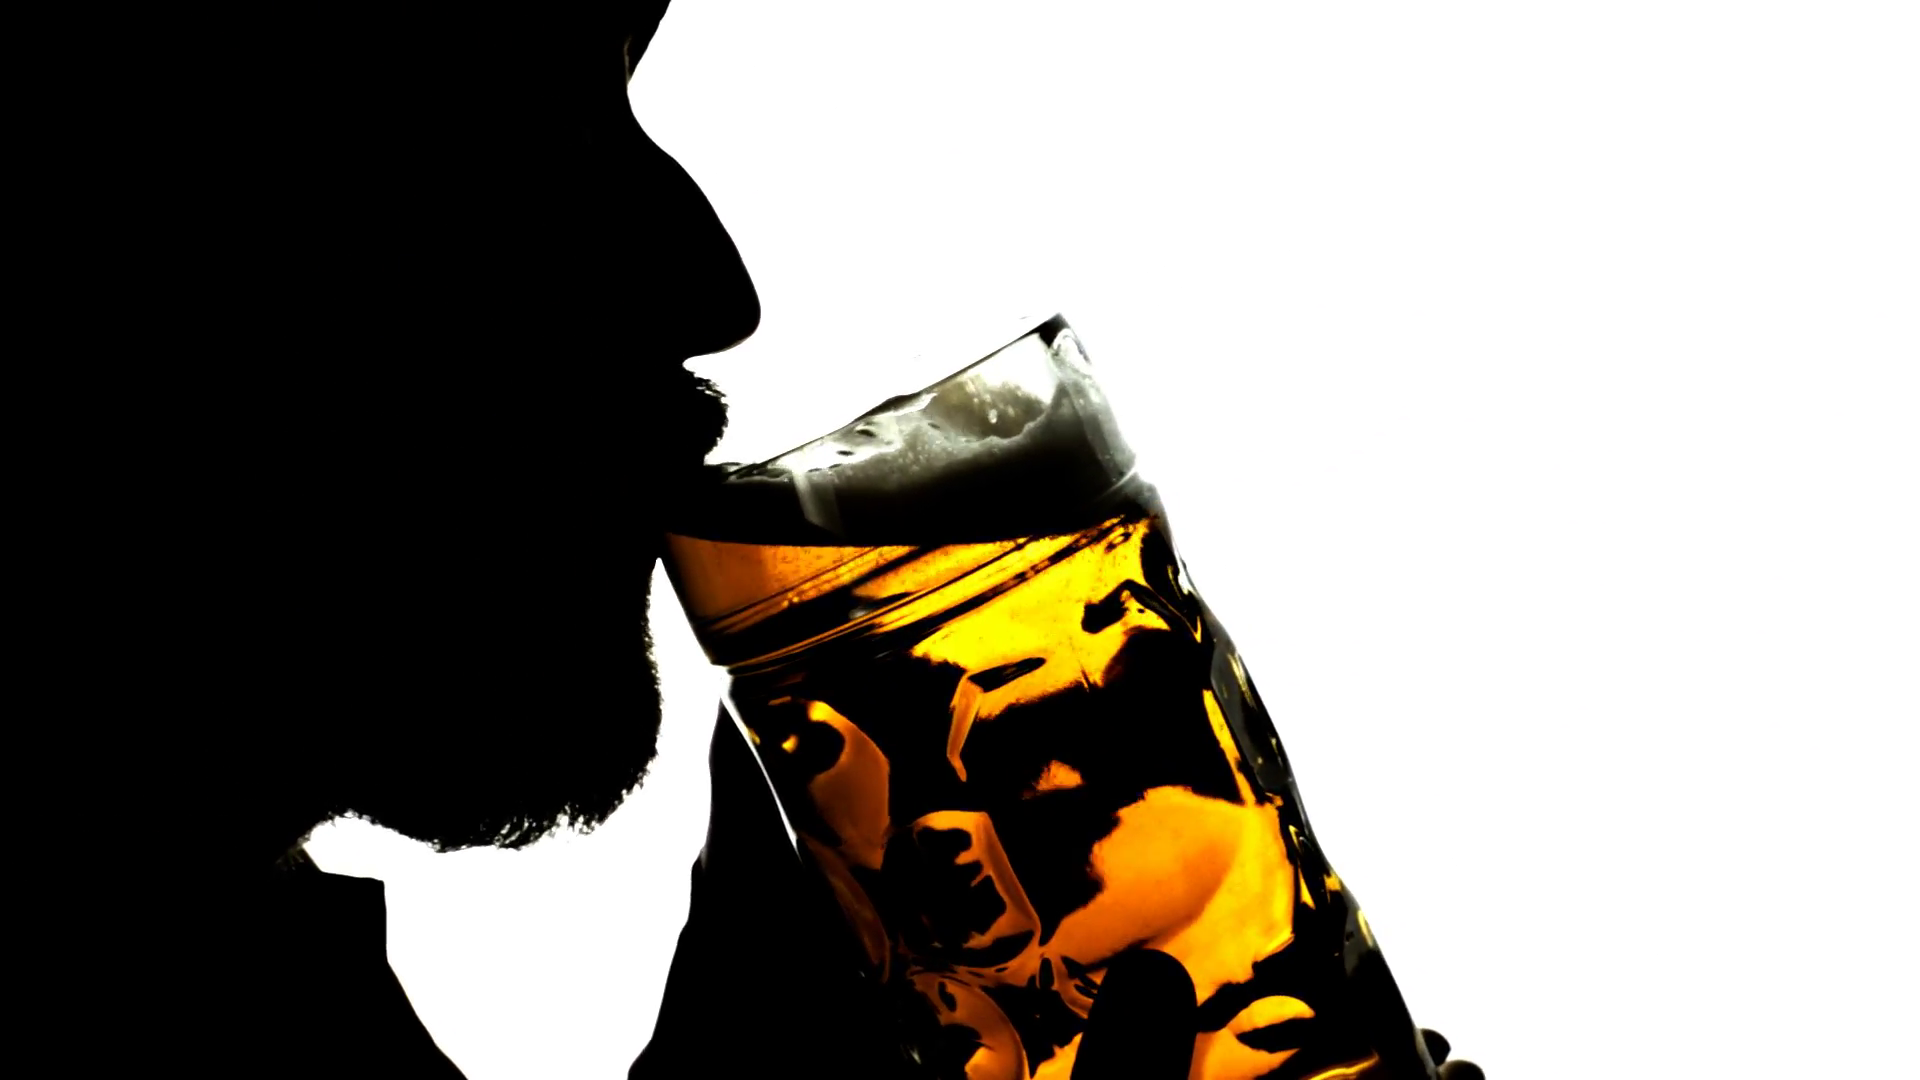 Drinking Beer Png - Beer silhouette big artificial. Close-up shot of a bearded old man ...